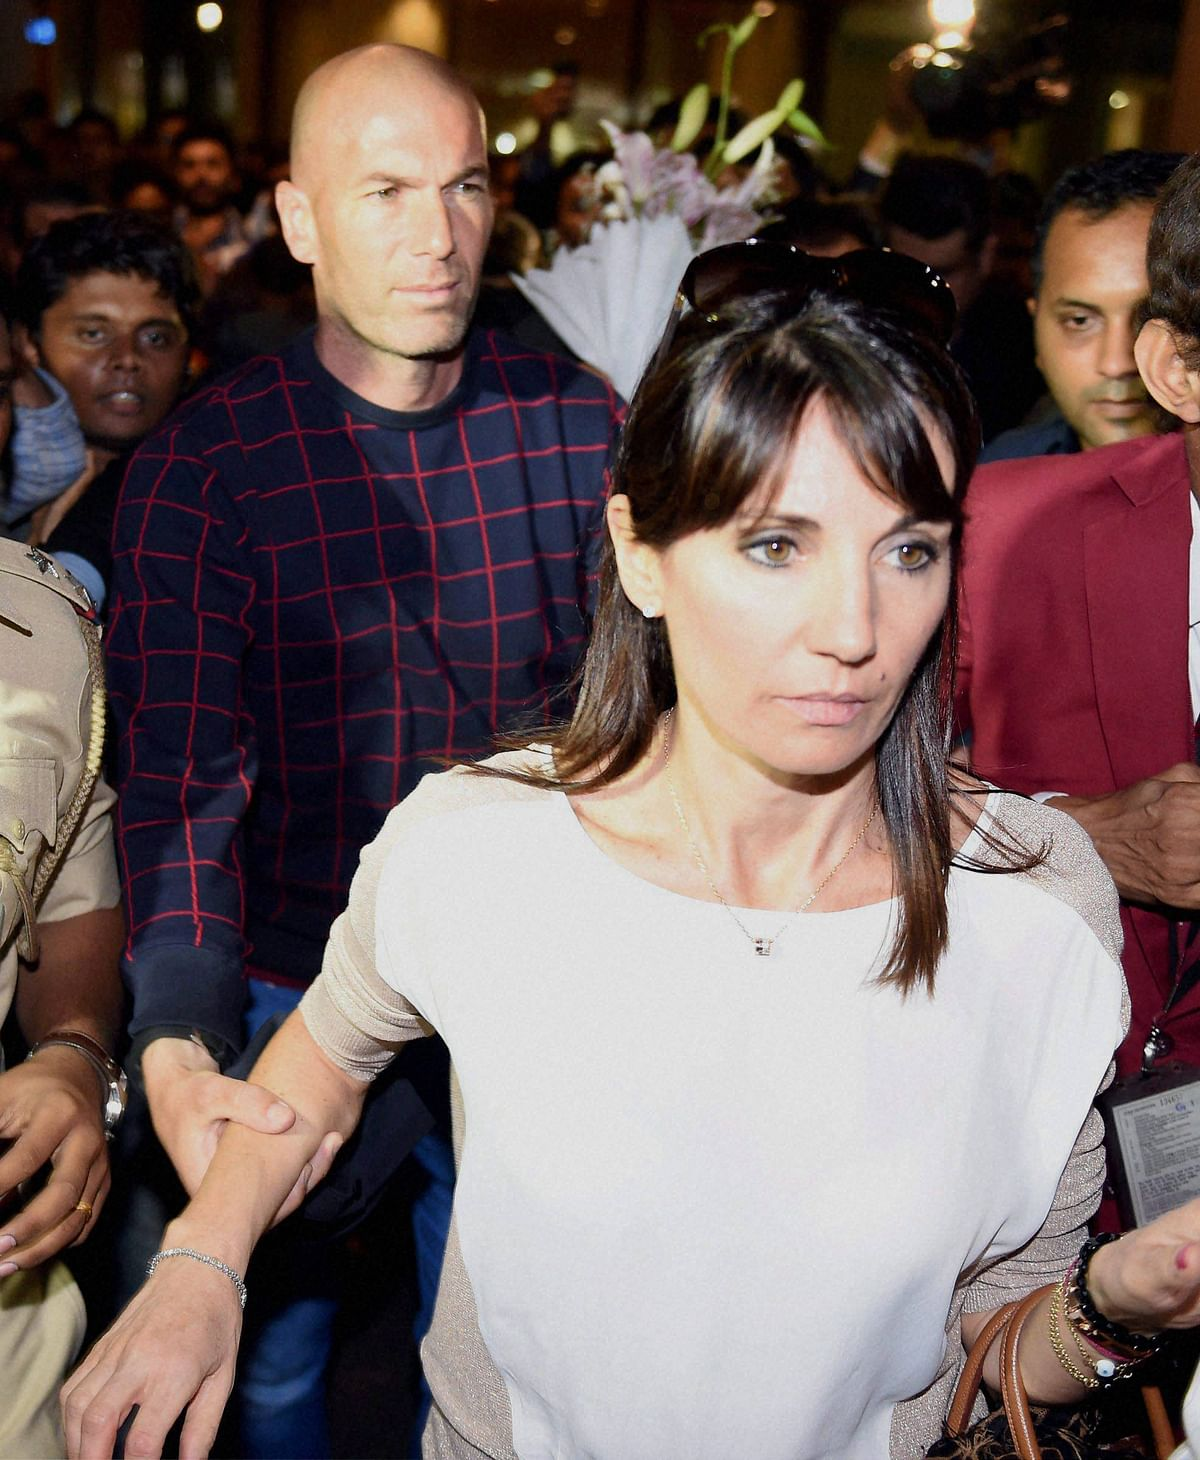 French footballer Zinedine Zidane with his wife Véronique Zidane at the International airport in Mumbai on Thursday. (Photo: PTI)